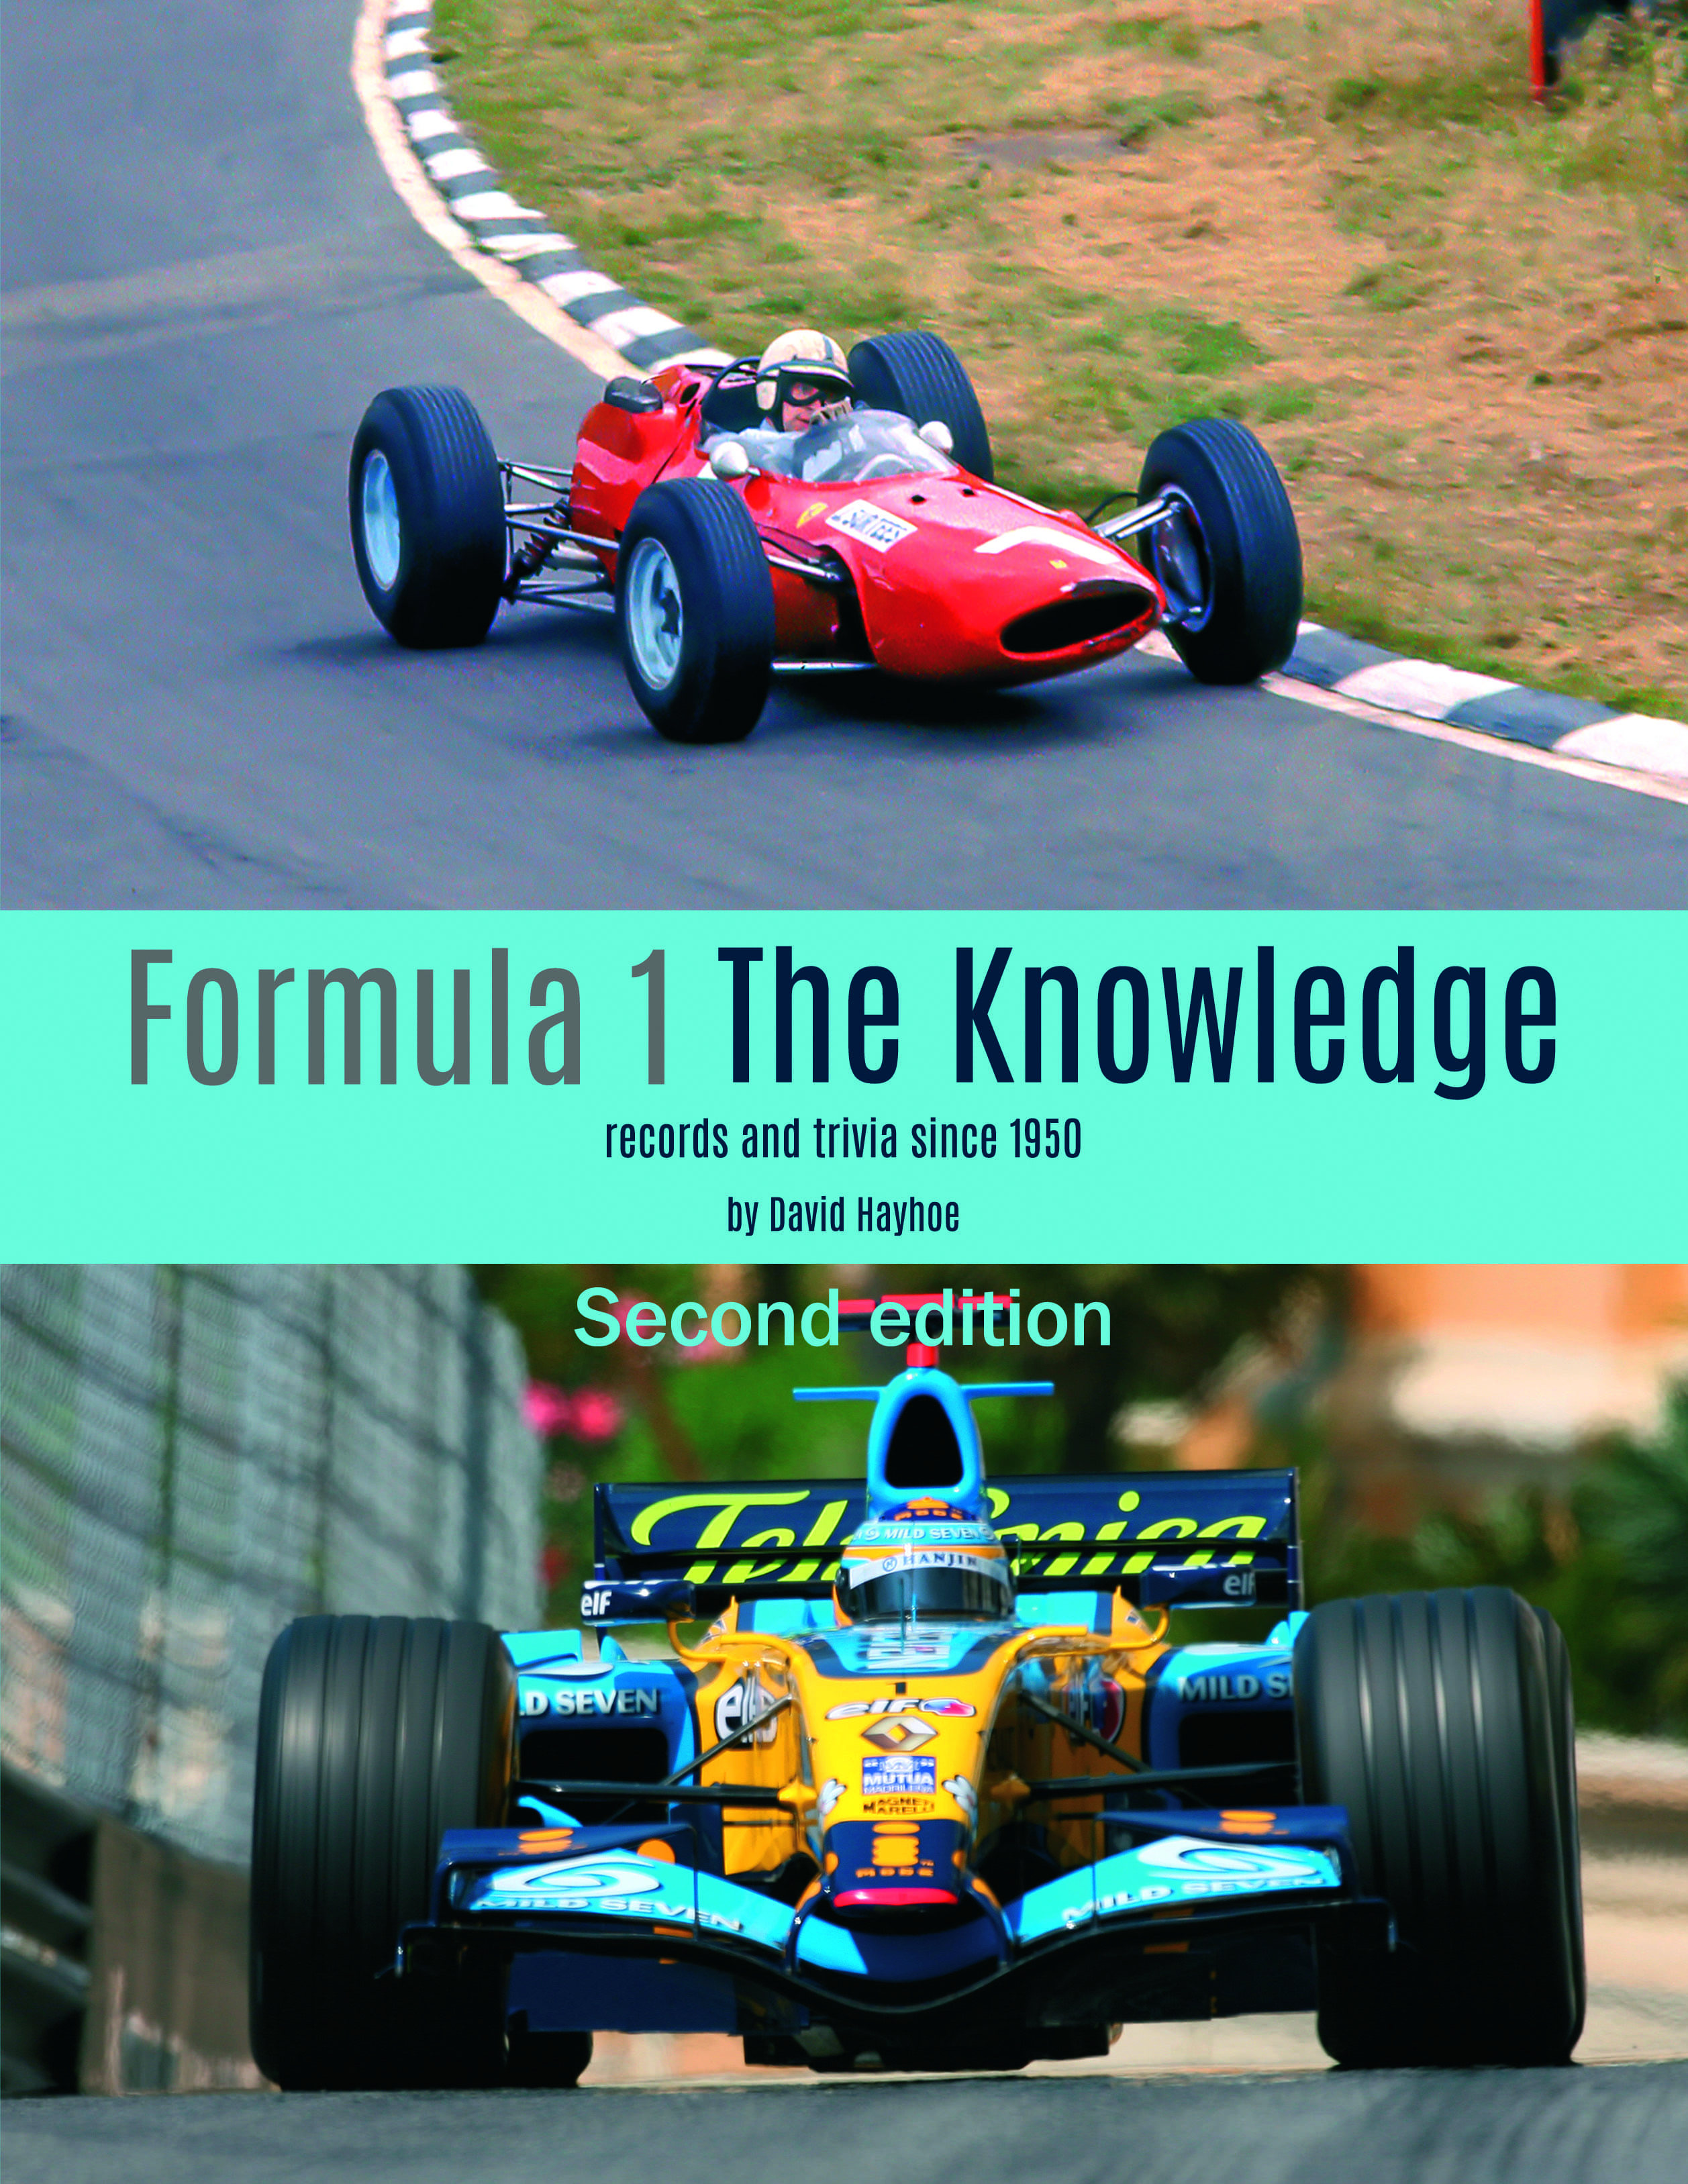 Formula 1 - The Knowledge 2nd Edition cover